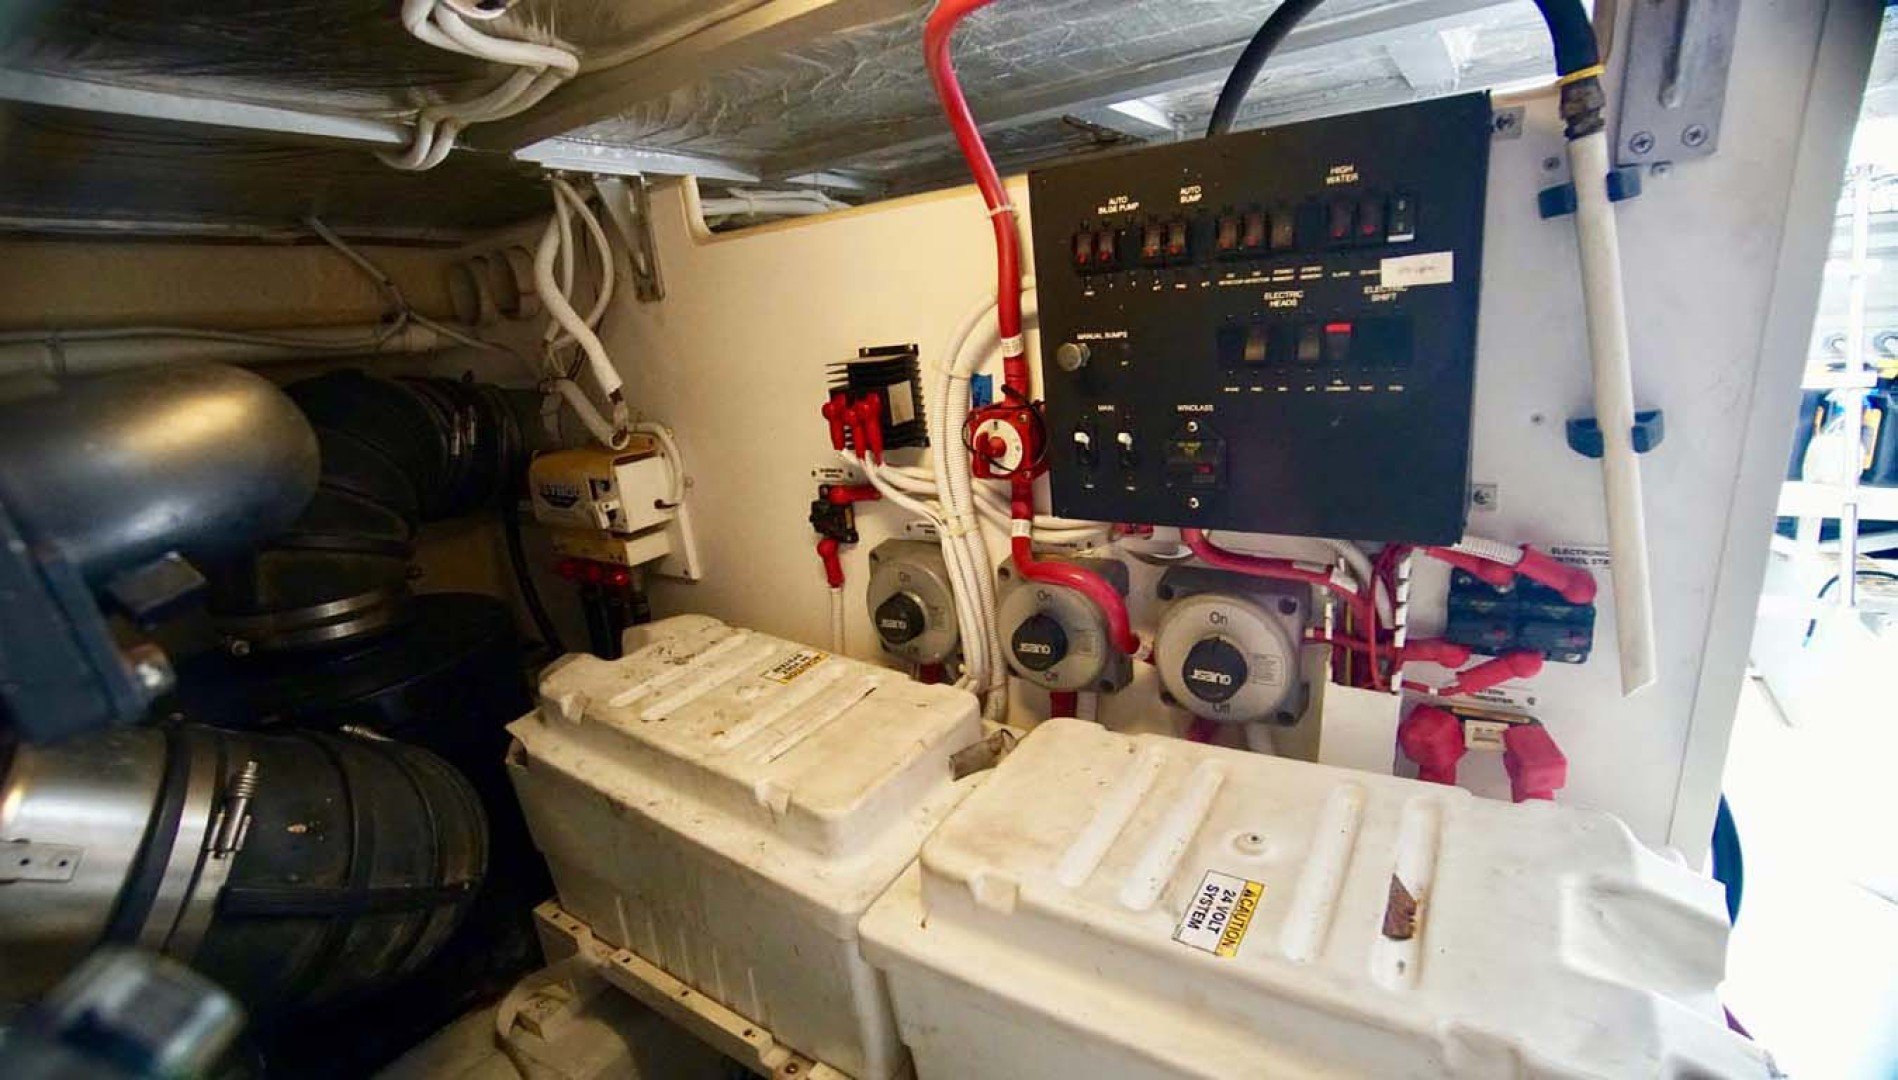 Carver-560 Voyager 2006-NEED A BREAK Fort Myers-Florida-United States-Engine Room-1105811 | Thumbnail